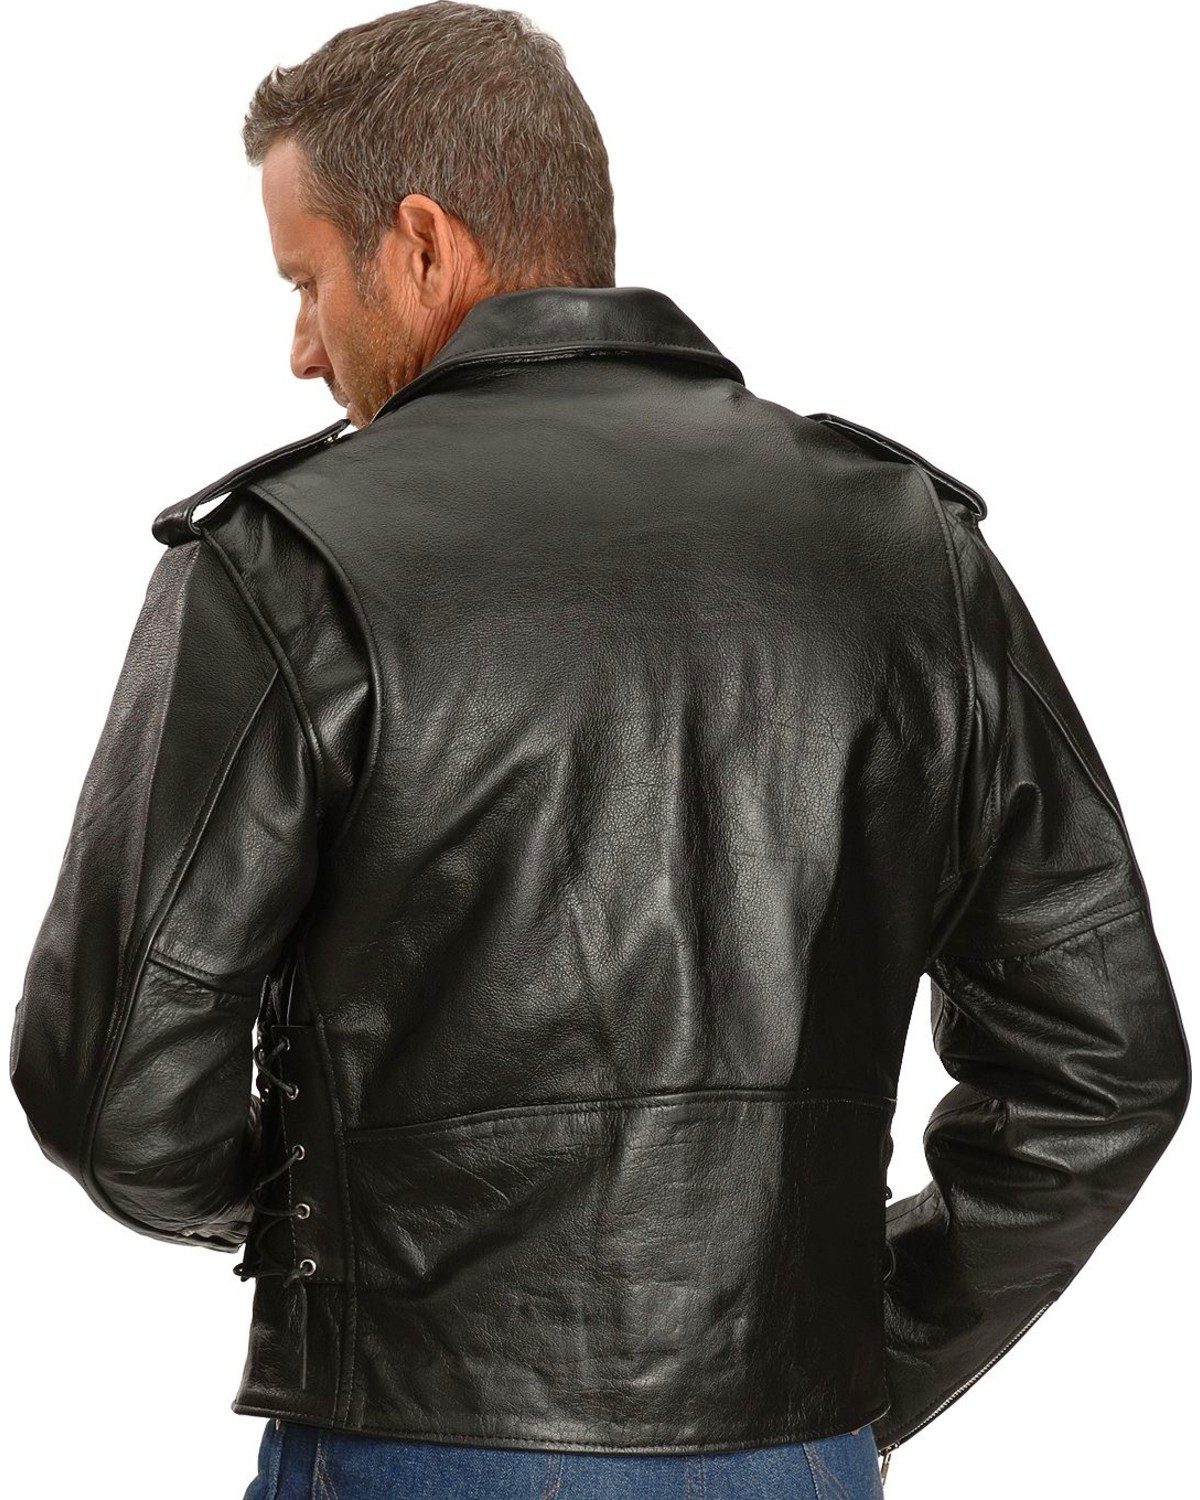 0ca0a1bbcdfd Interstate Leather Men s Ryder Motorcycle Jacket